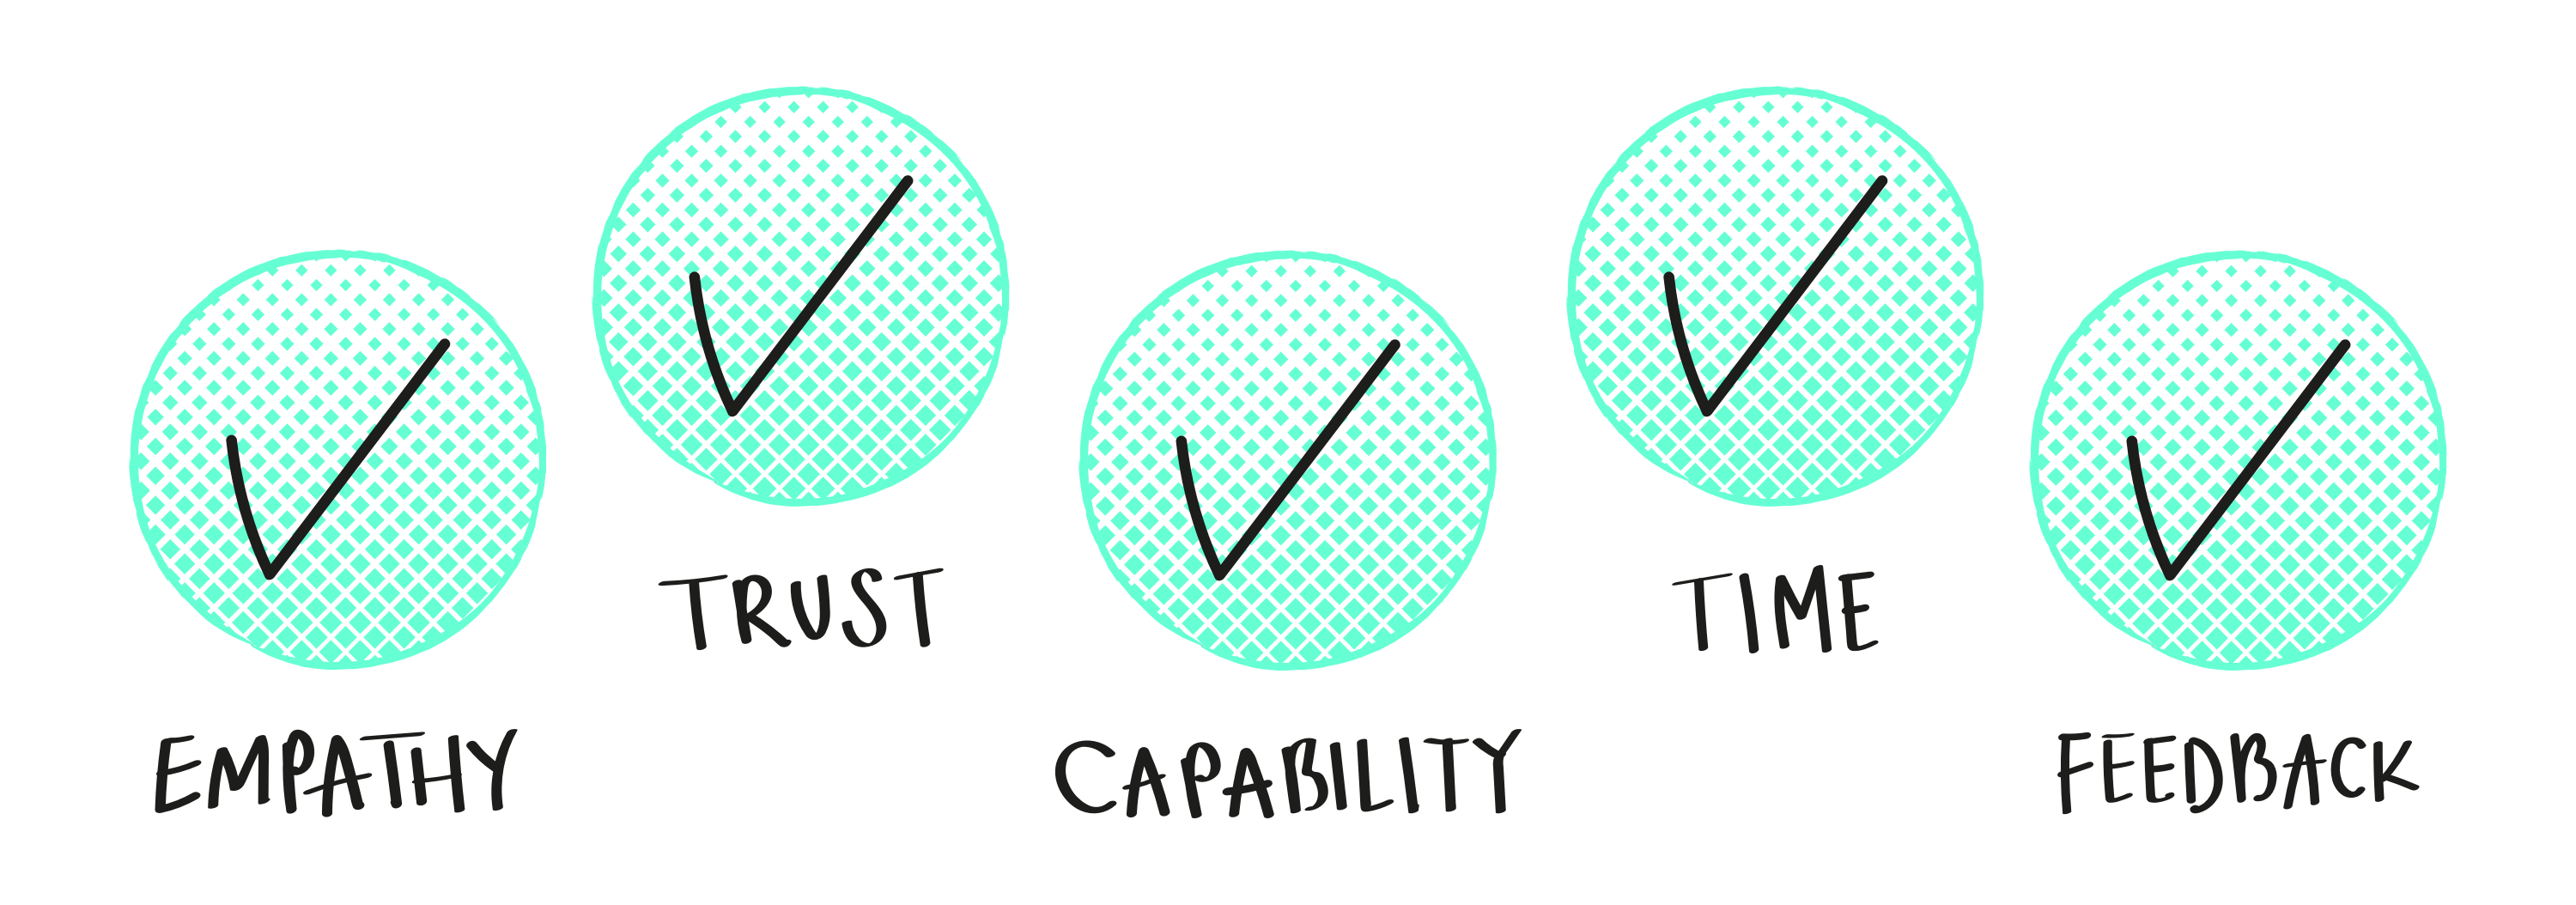 Five circle icons, each with a tick nested within, listing: empathy, trust, capability, time and feedback